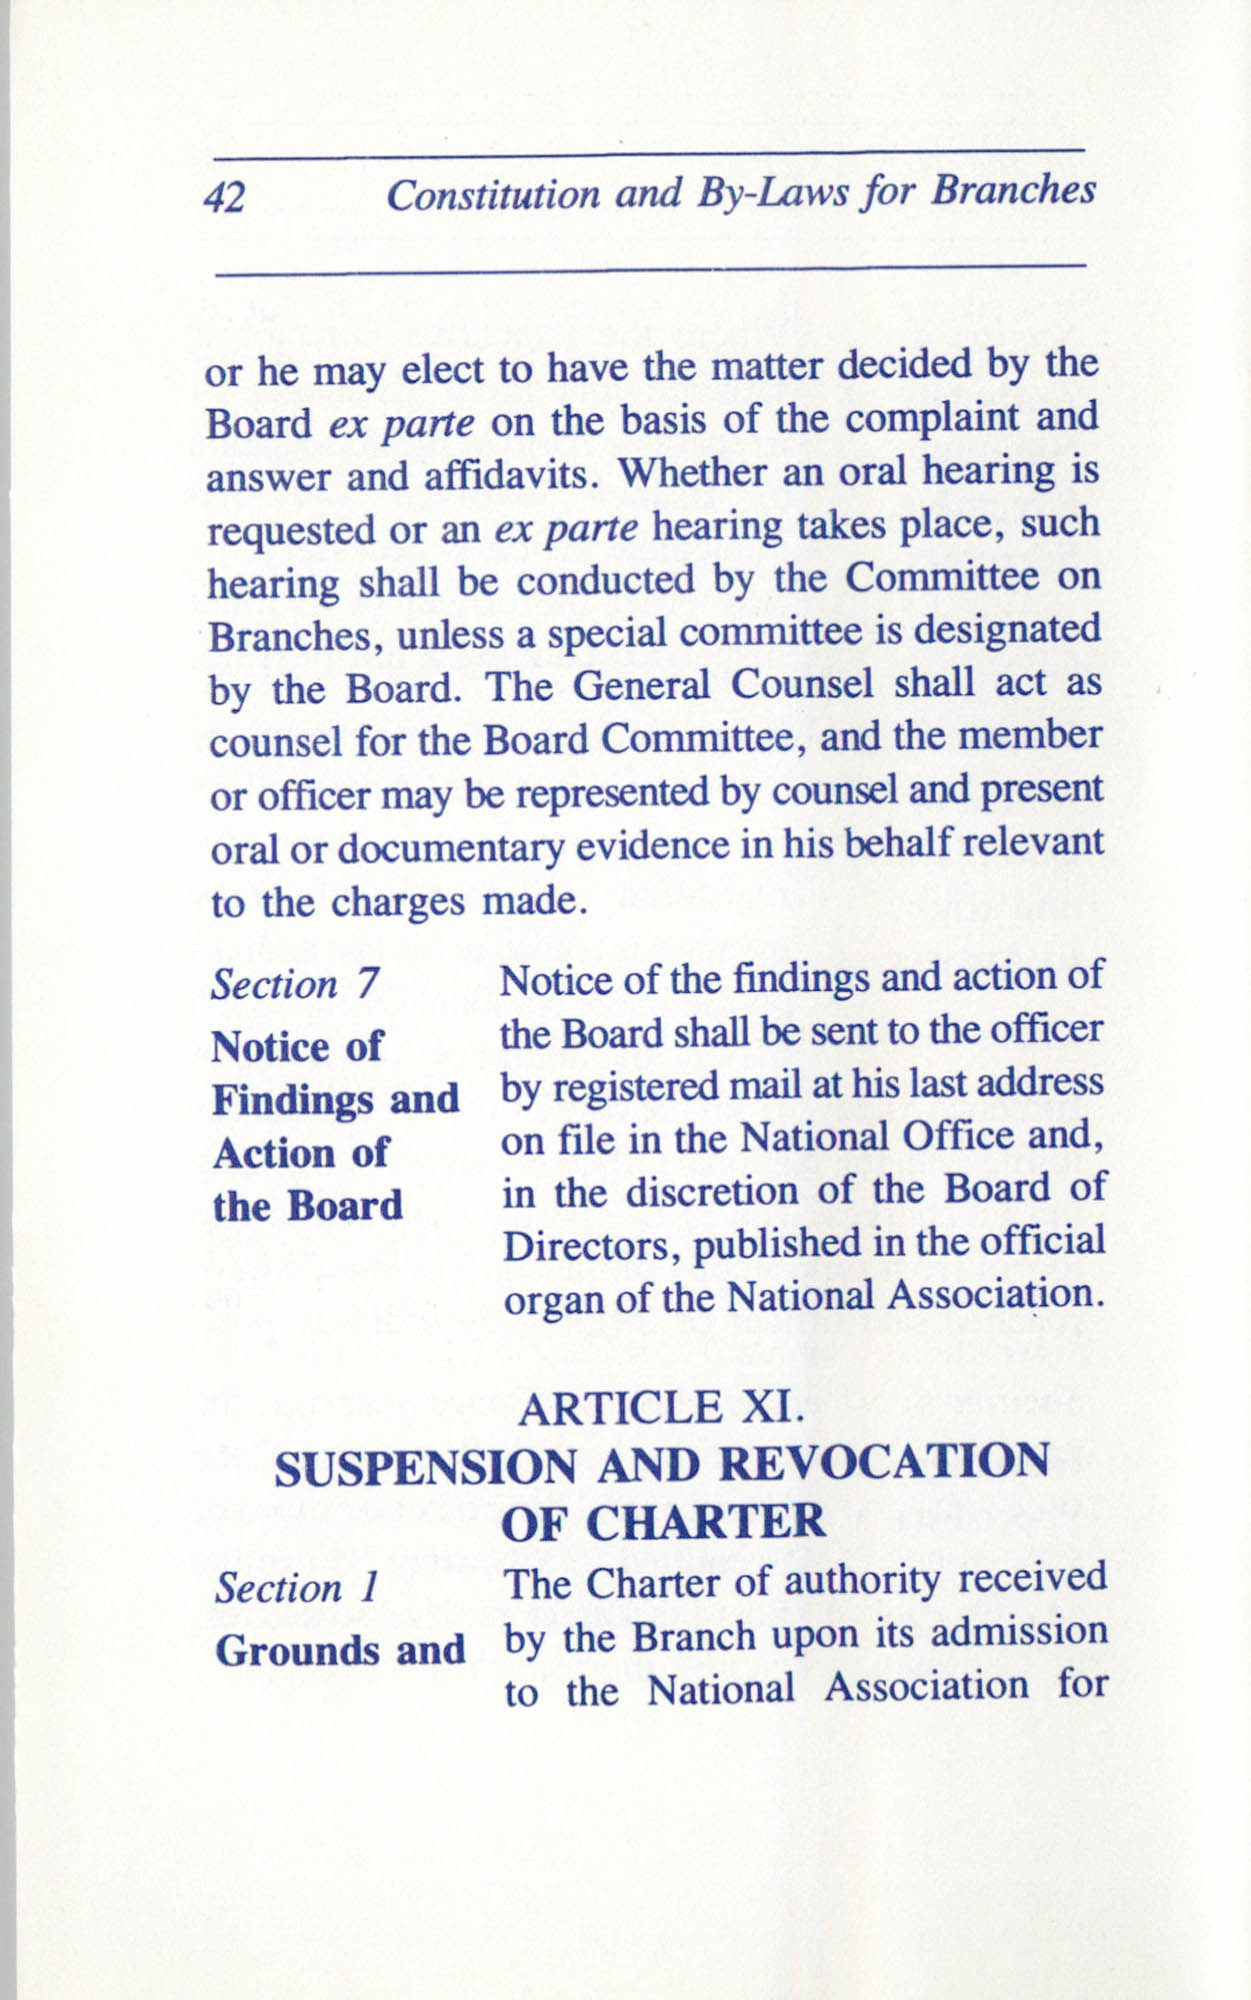 Constitution and By-Laws for Branches of the NAACP, June 1993, Page 42